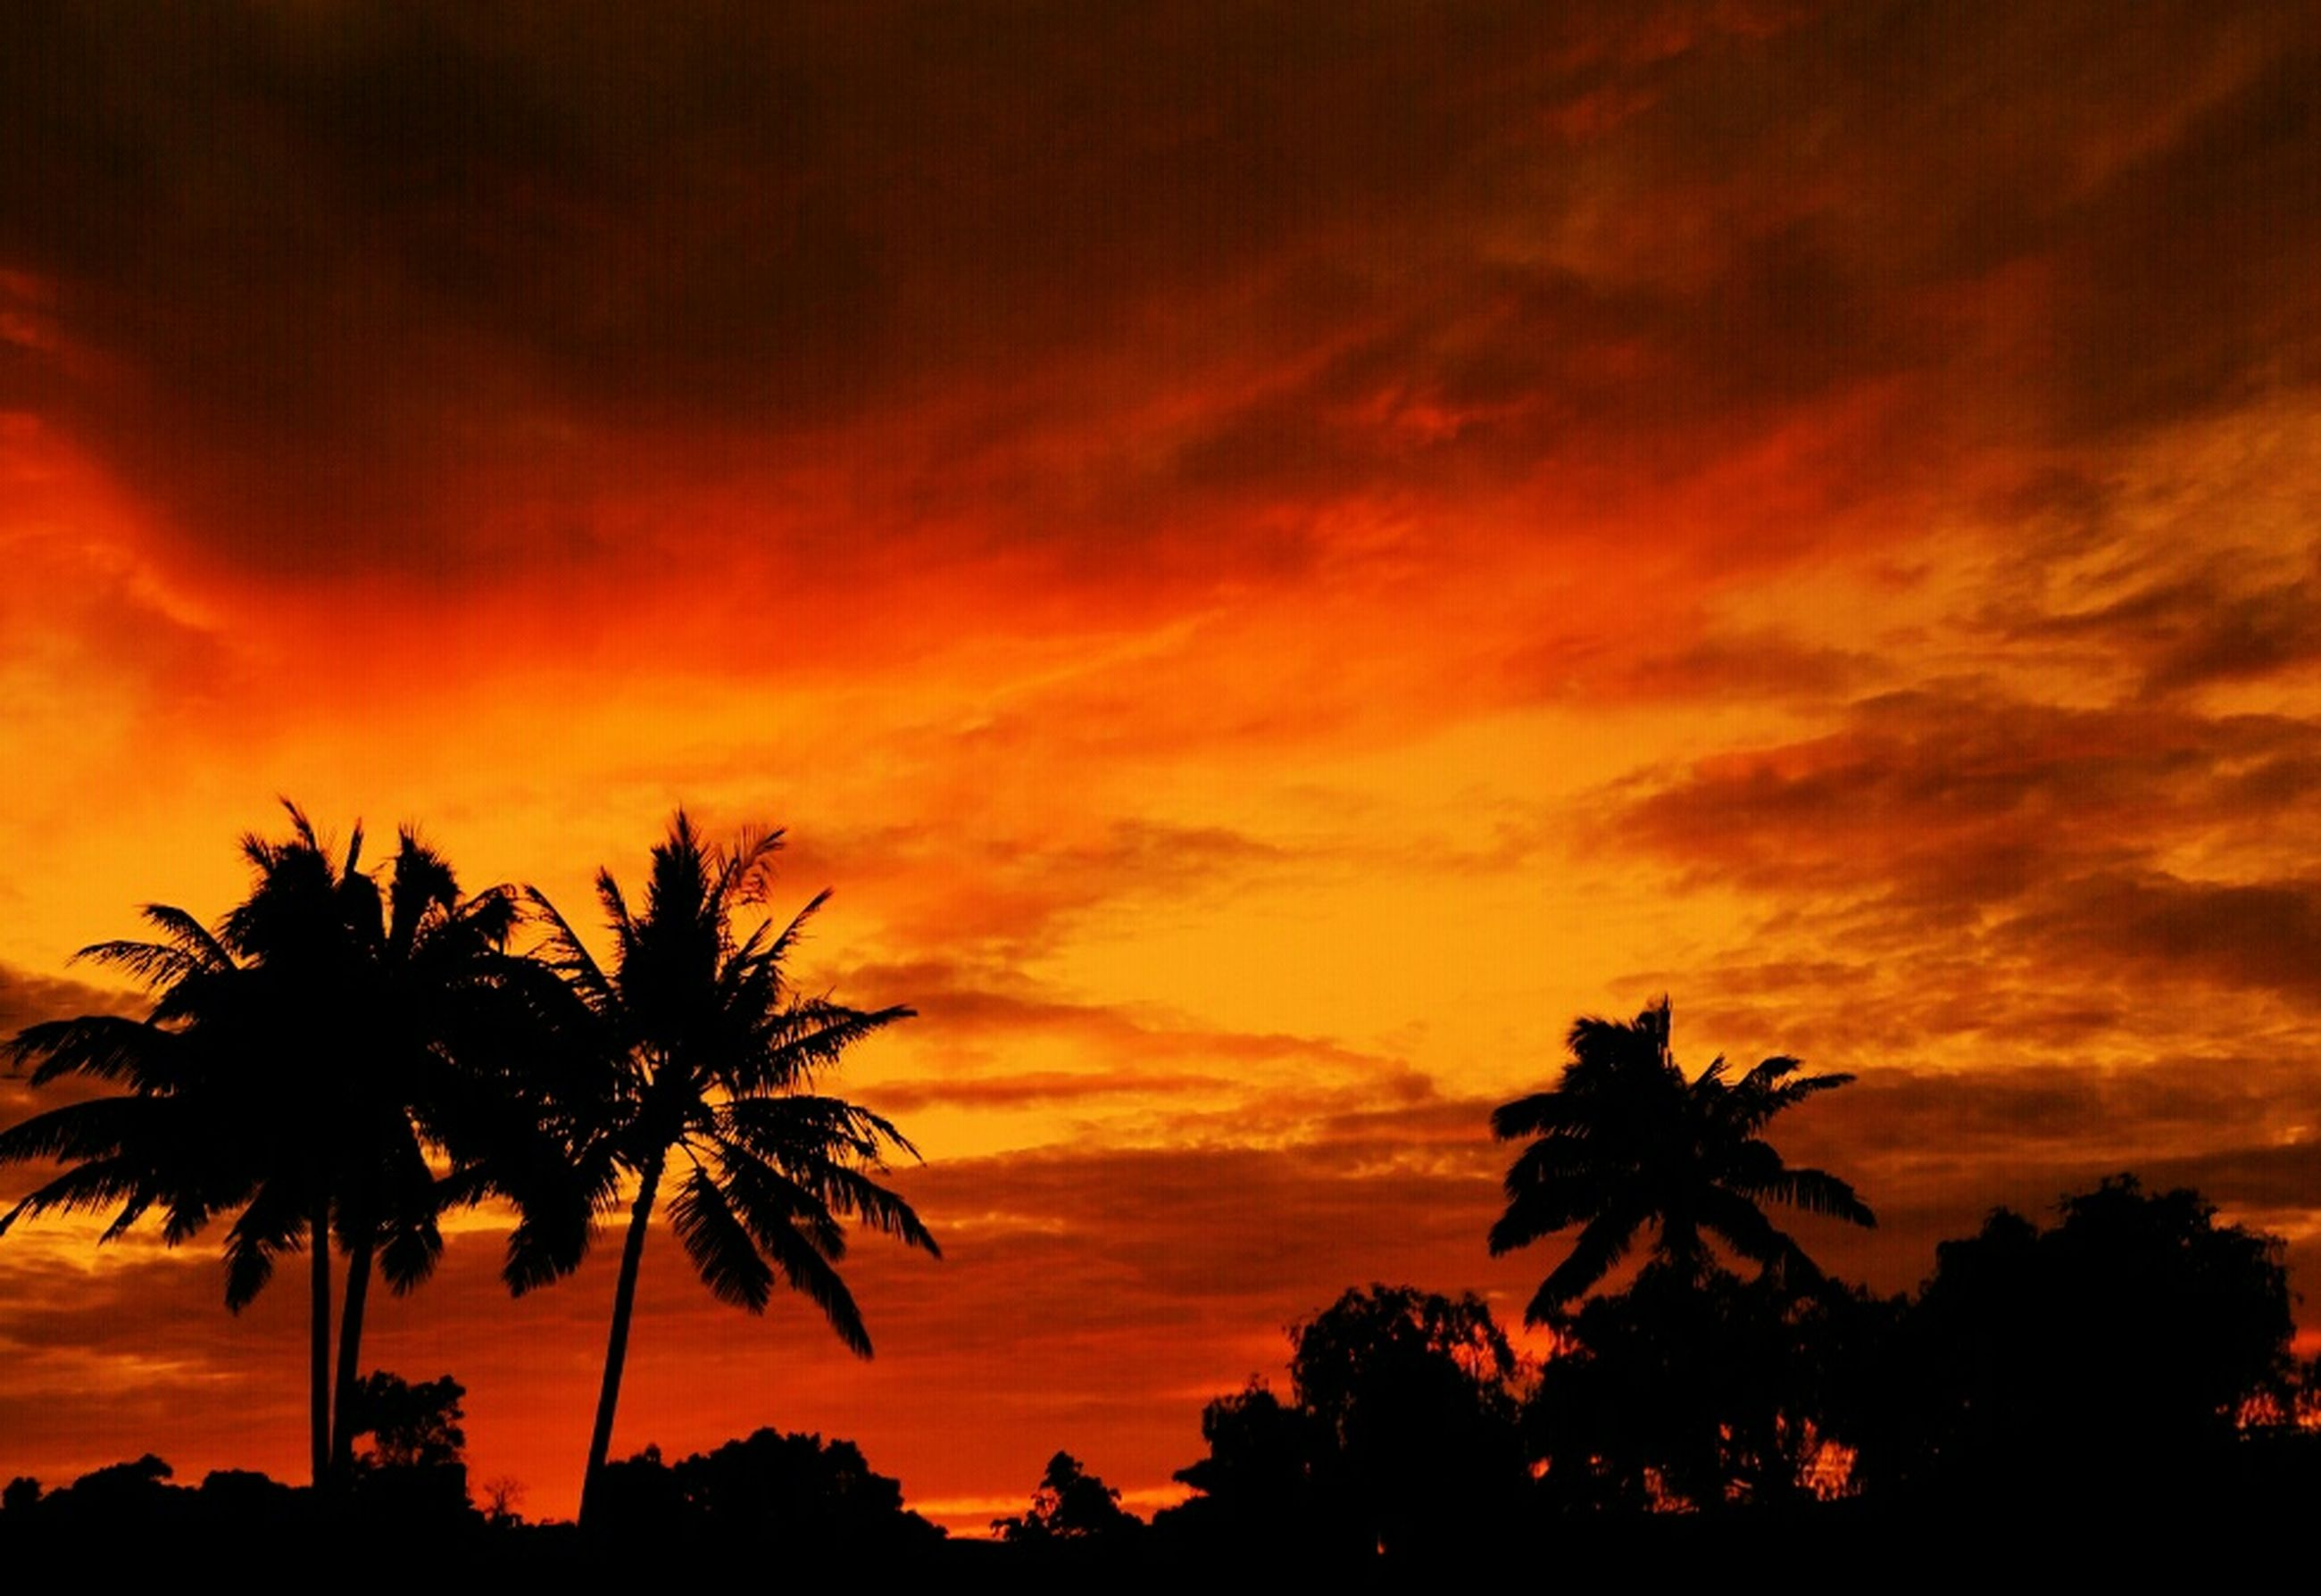 sunset, silhouette, sky, tree, palm tree, beauty in nature, orange color, scenics, tranquility, cloud - sky, dramatic sky, tranquil scene, low angle view, nature, idyllic, growth, cloudy, cloud, moody sky, atmospheric mood